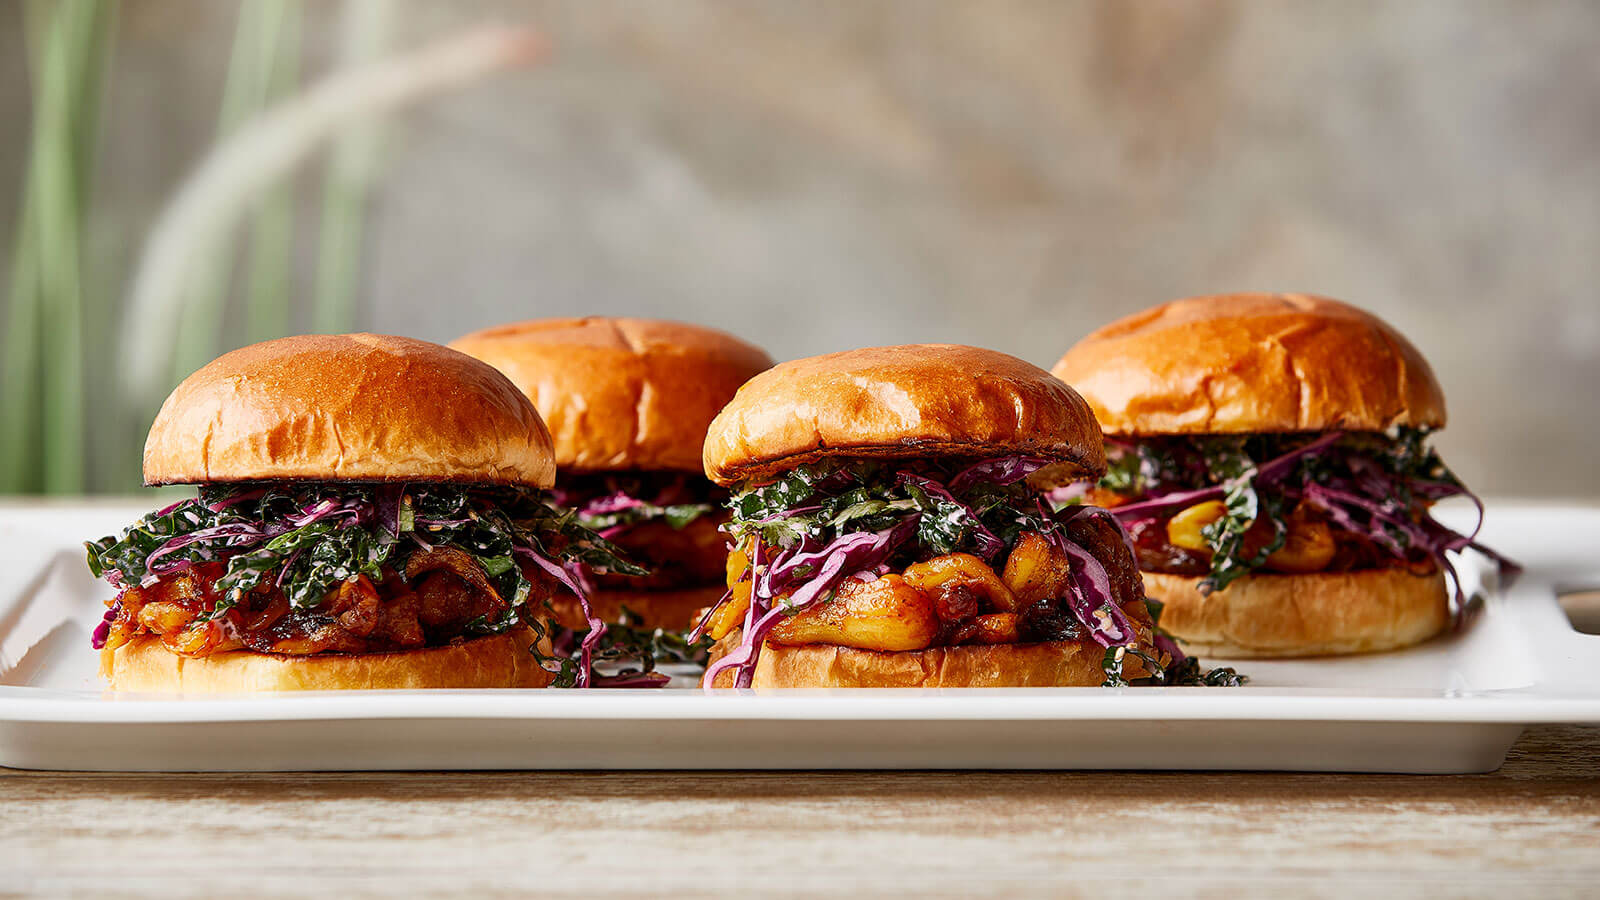 Pulled Pork-Style BBQ Jackfruit Sandwiches